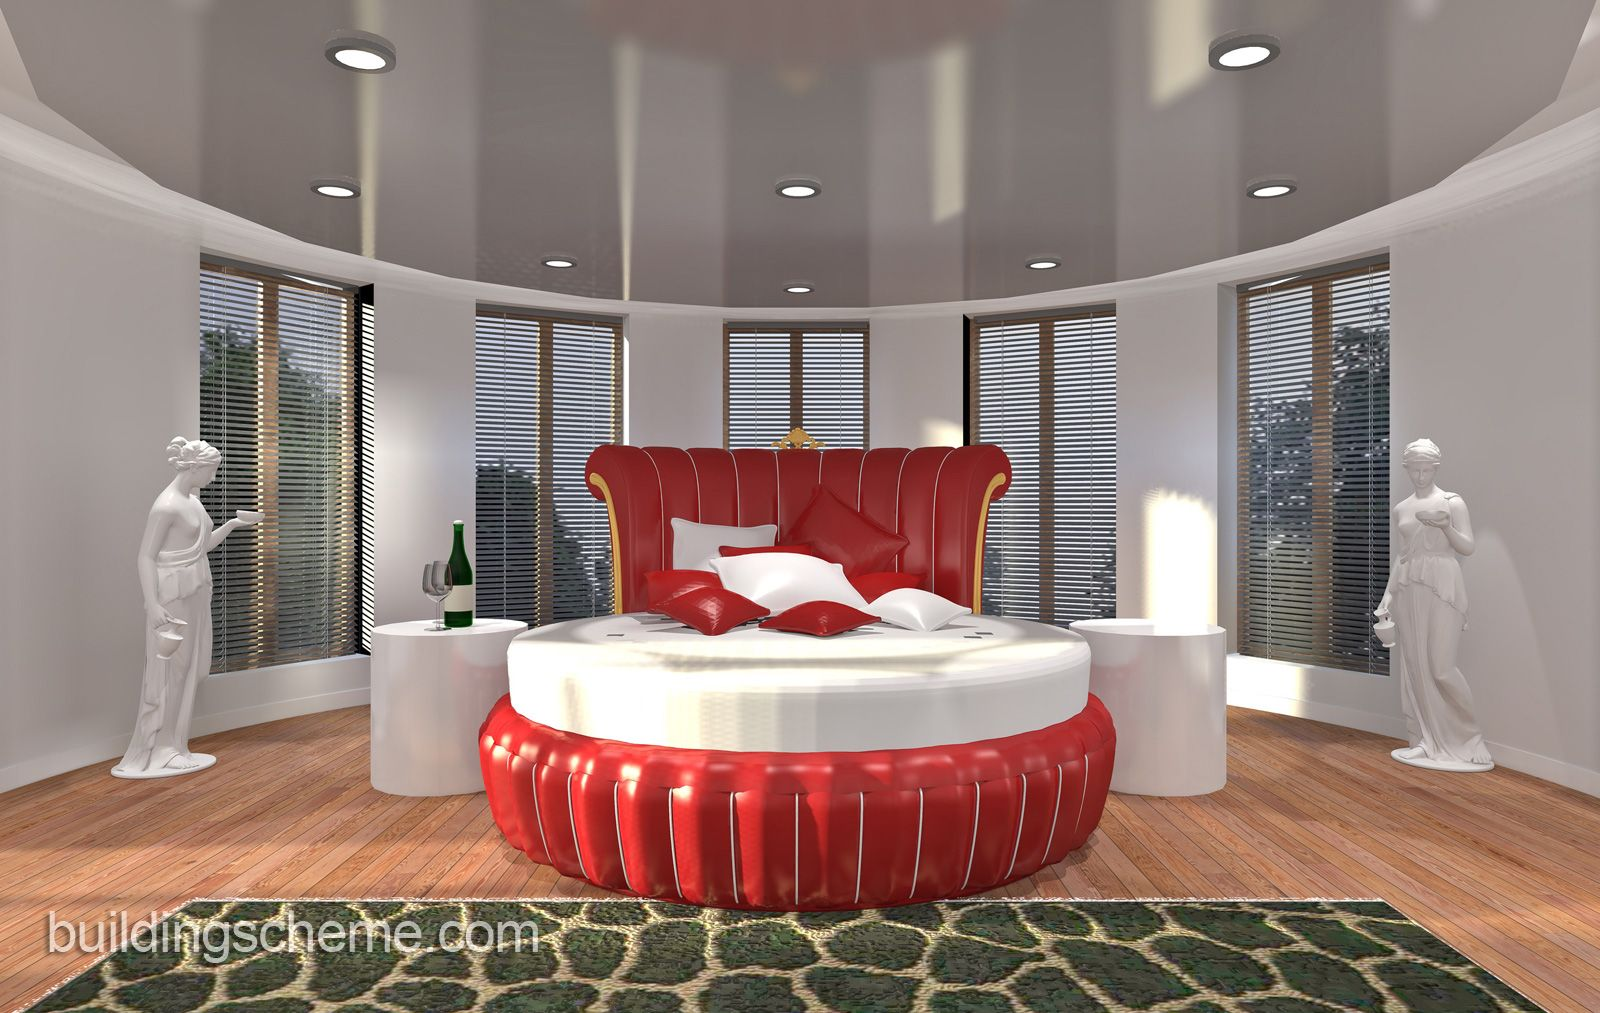 Rundbett Komplett Schlafzimmer Cool Wallpaper Incredible Cool Bedroom Ideas For Young Couple With